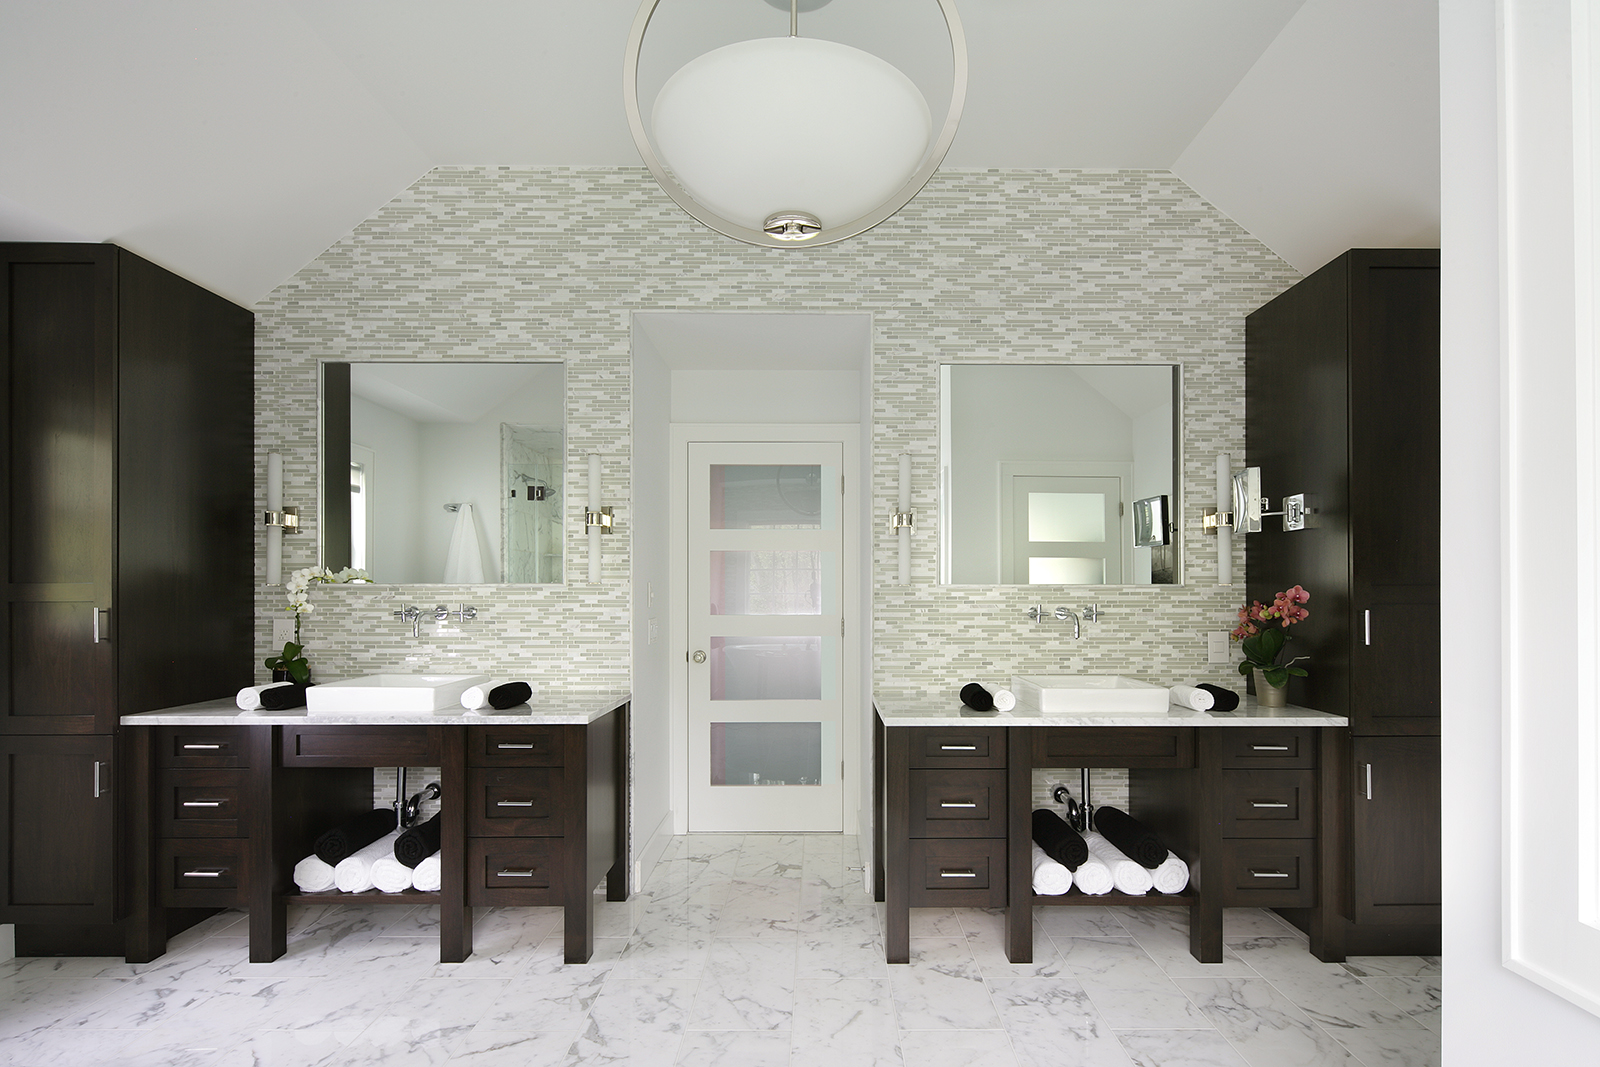 Award winning bathroom designs 2016 - An Award Winning White Transitional Bath Design From Peter Salerno Inc